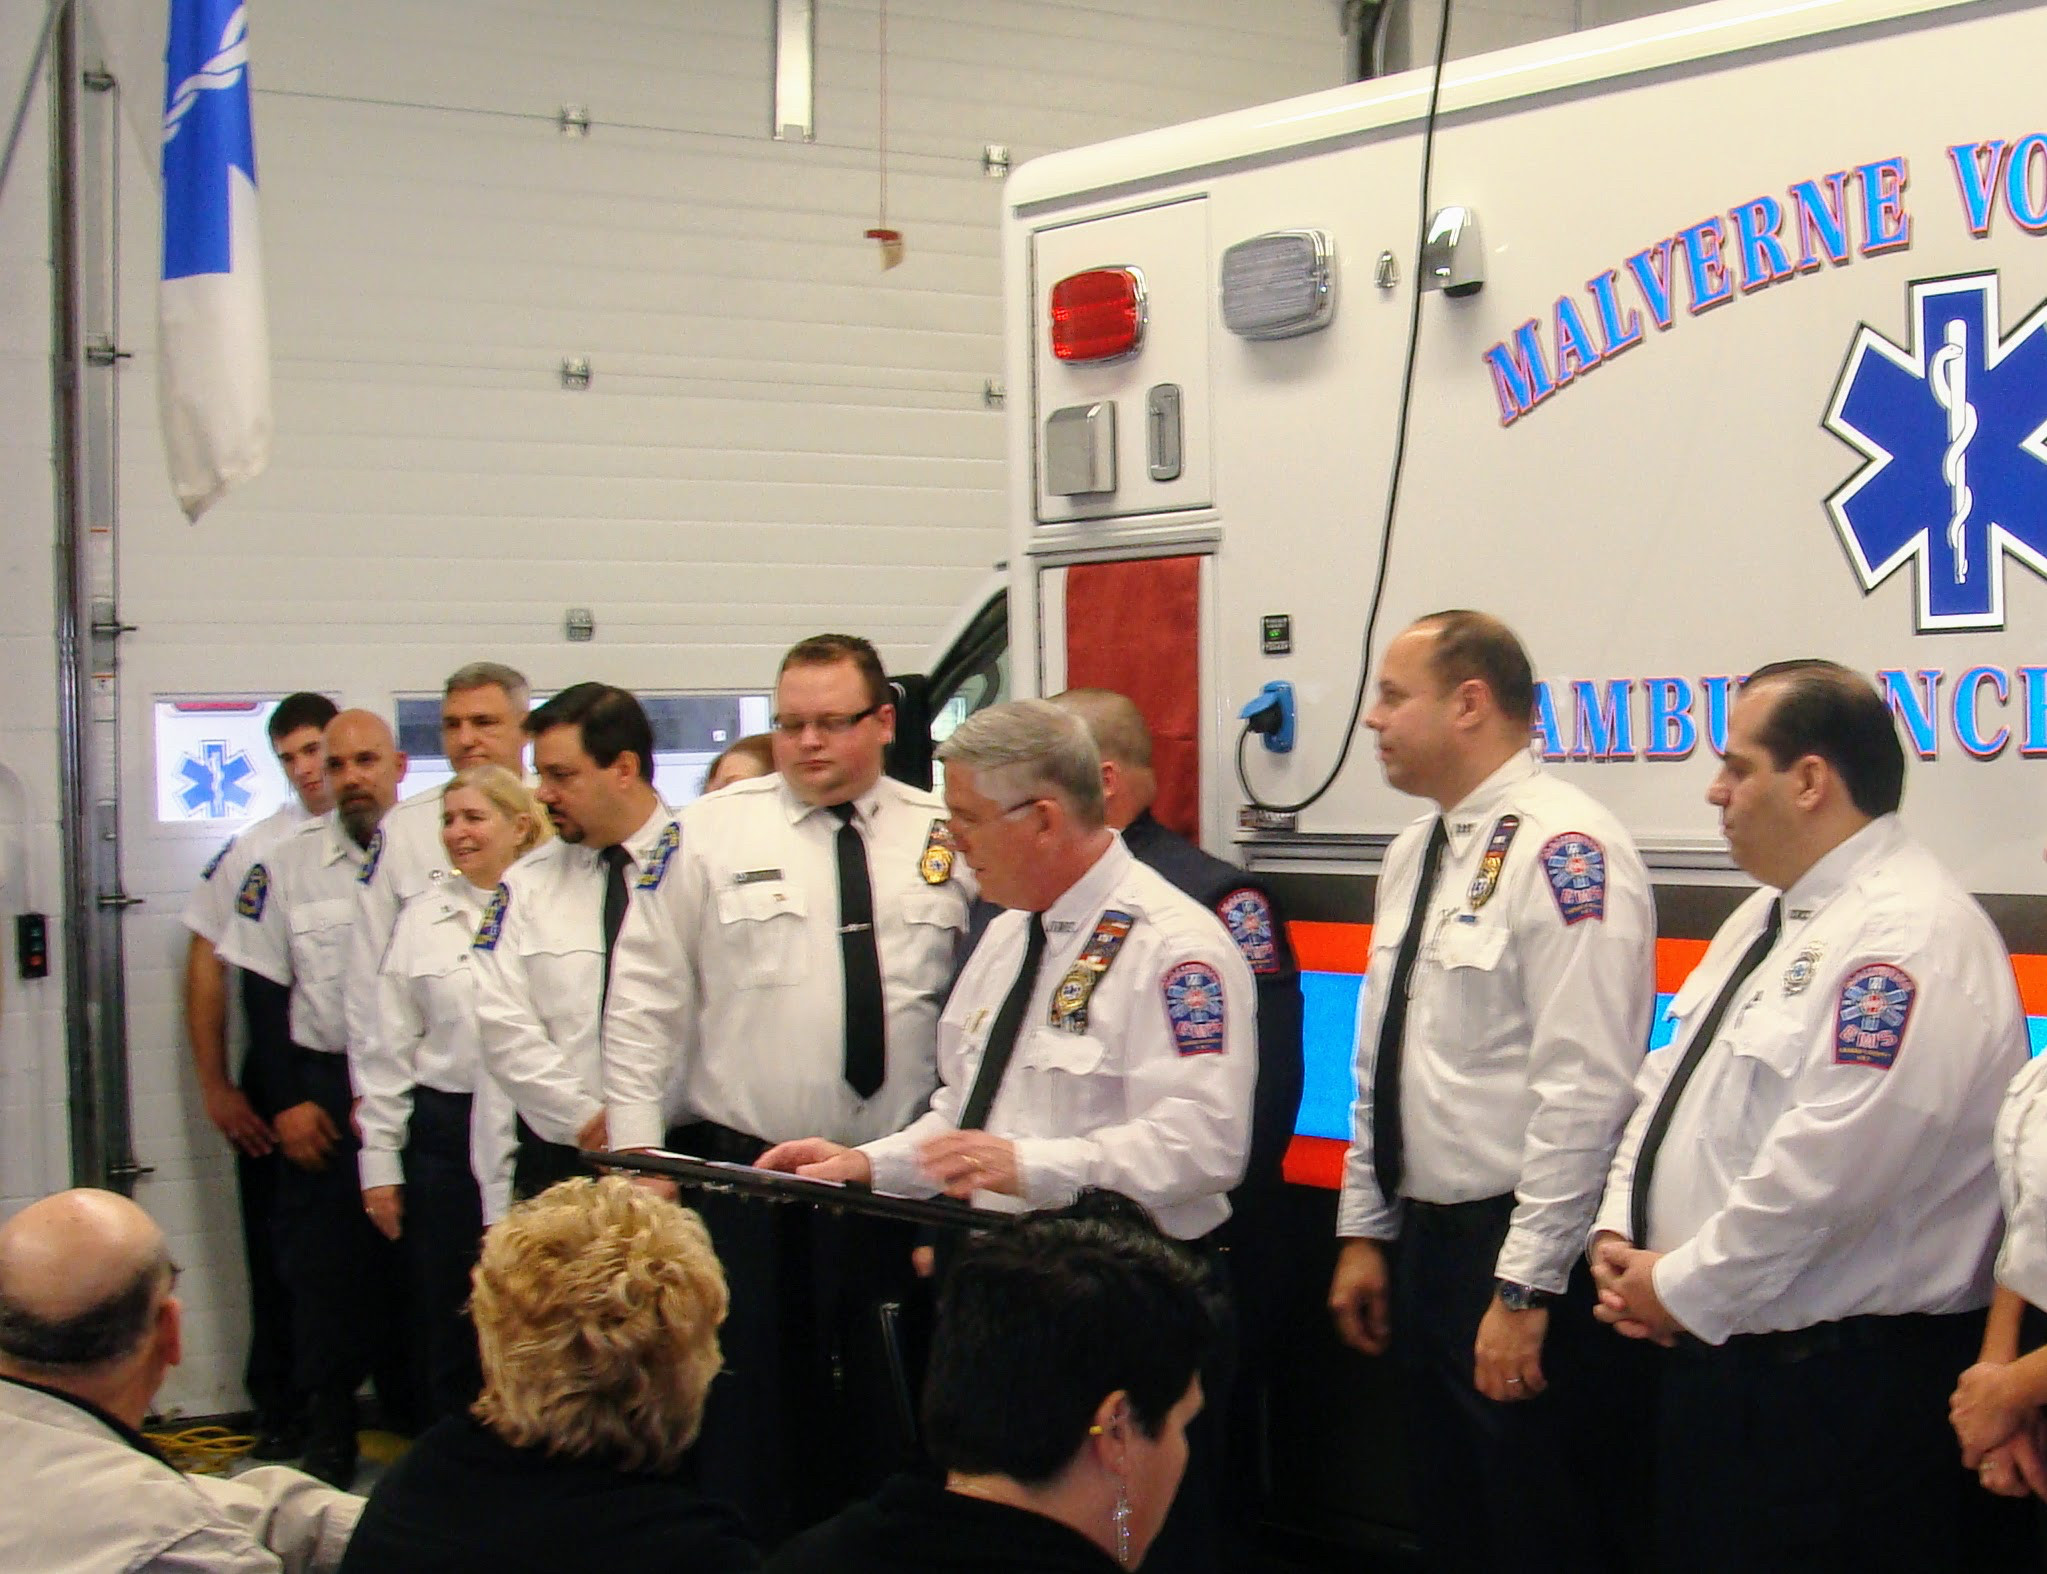 Members of the Malverne Volunteer Ambulance Corps at a new ambulance dedication ceremony in 2013.